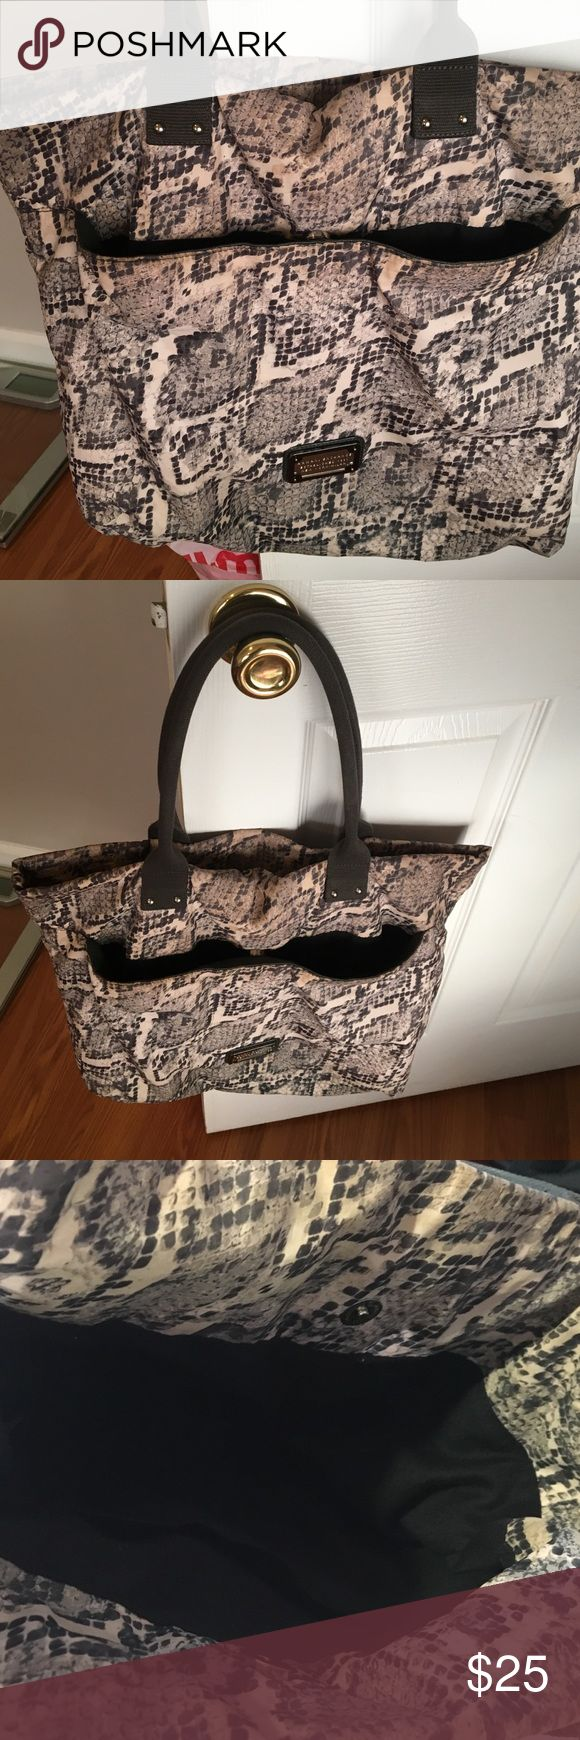 Armani exchange tote bag Snake skin pattern total bag. Lightly used. Pocket on the front and 2 inside pockets. A/X Armani Exchange Bags Totes